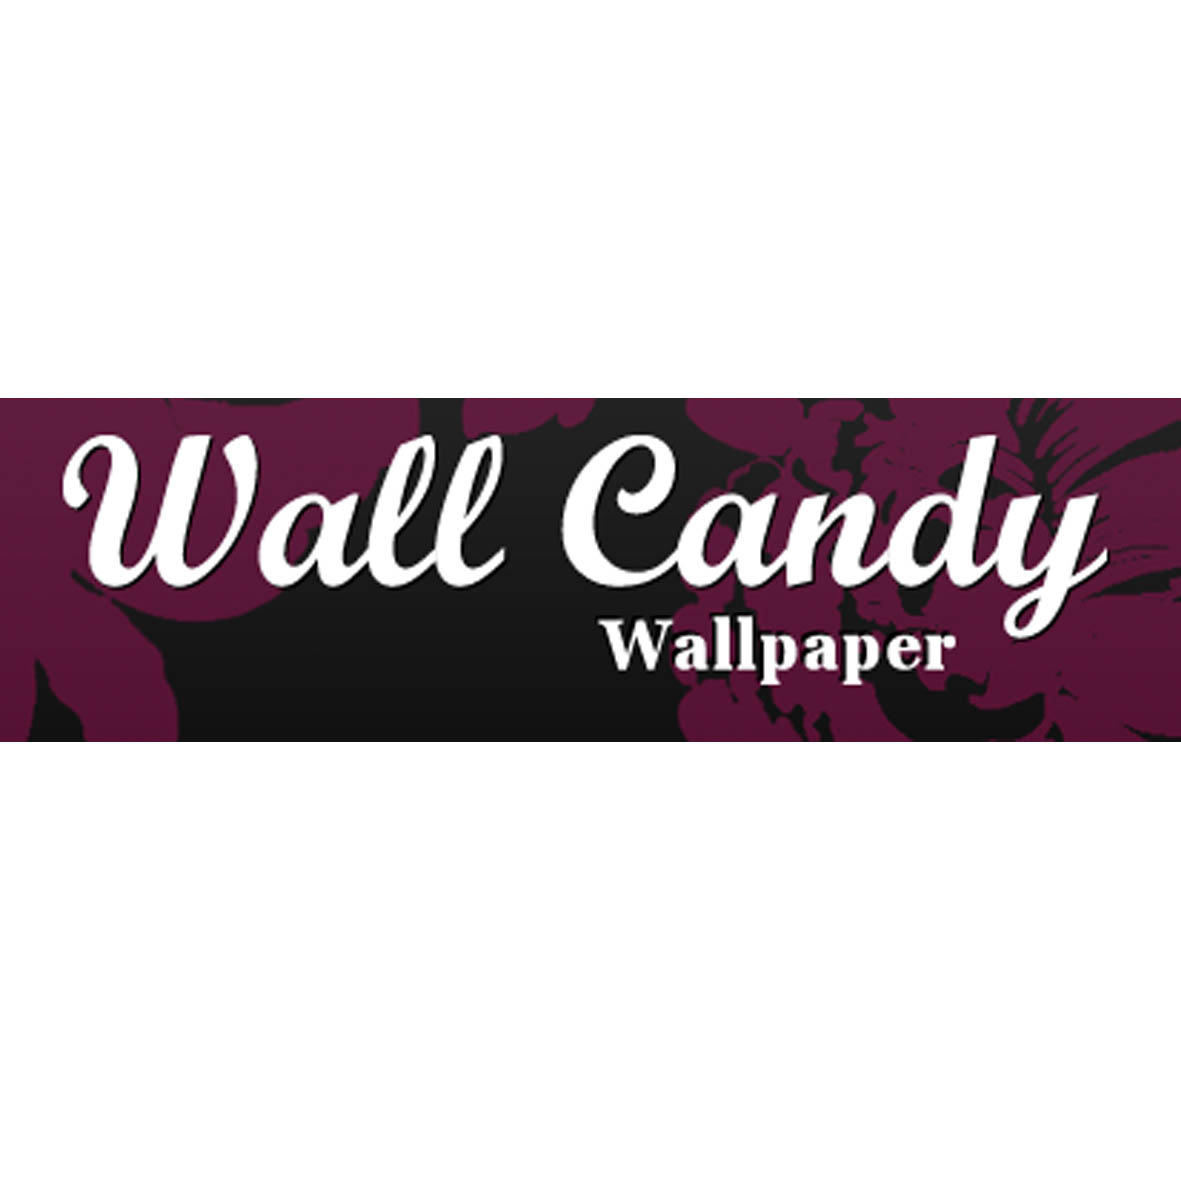 Wall Candy Wallpaper - Sydney